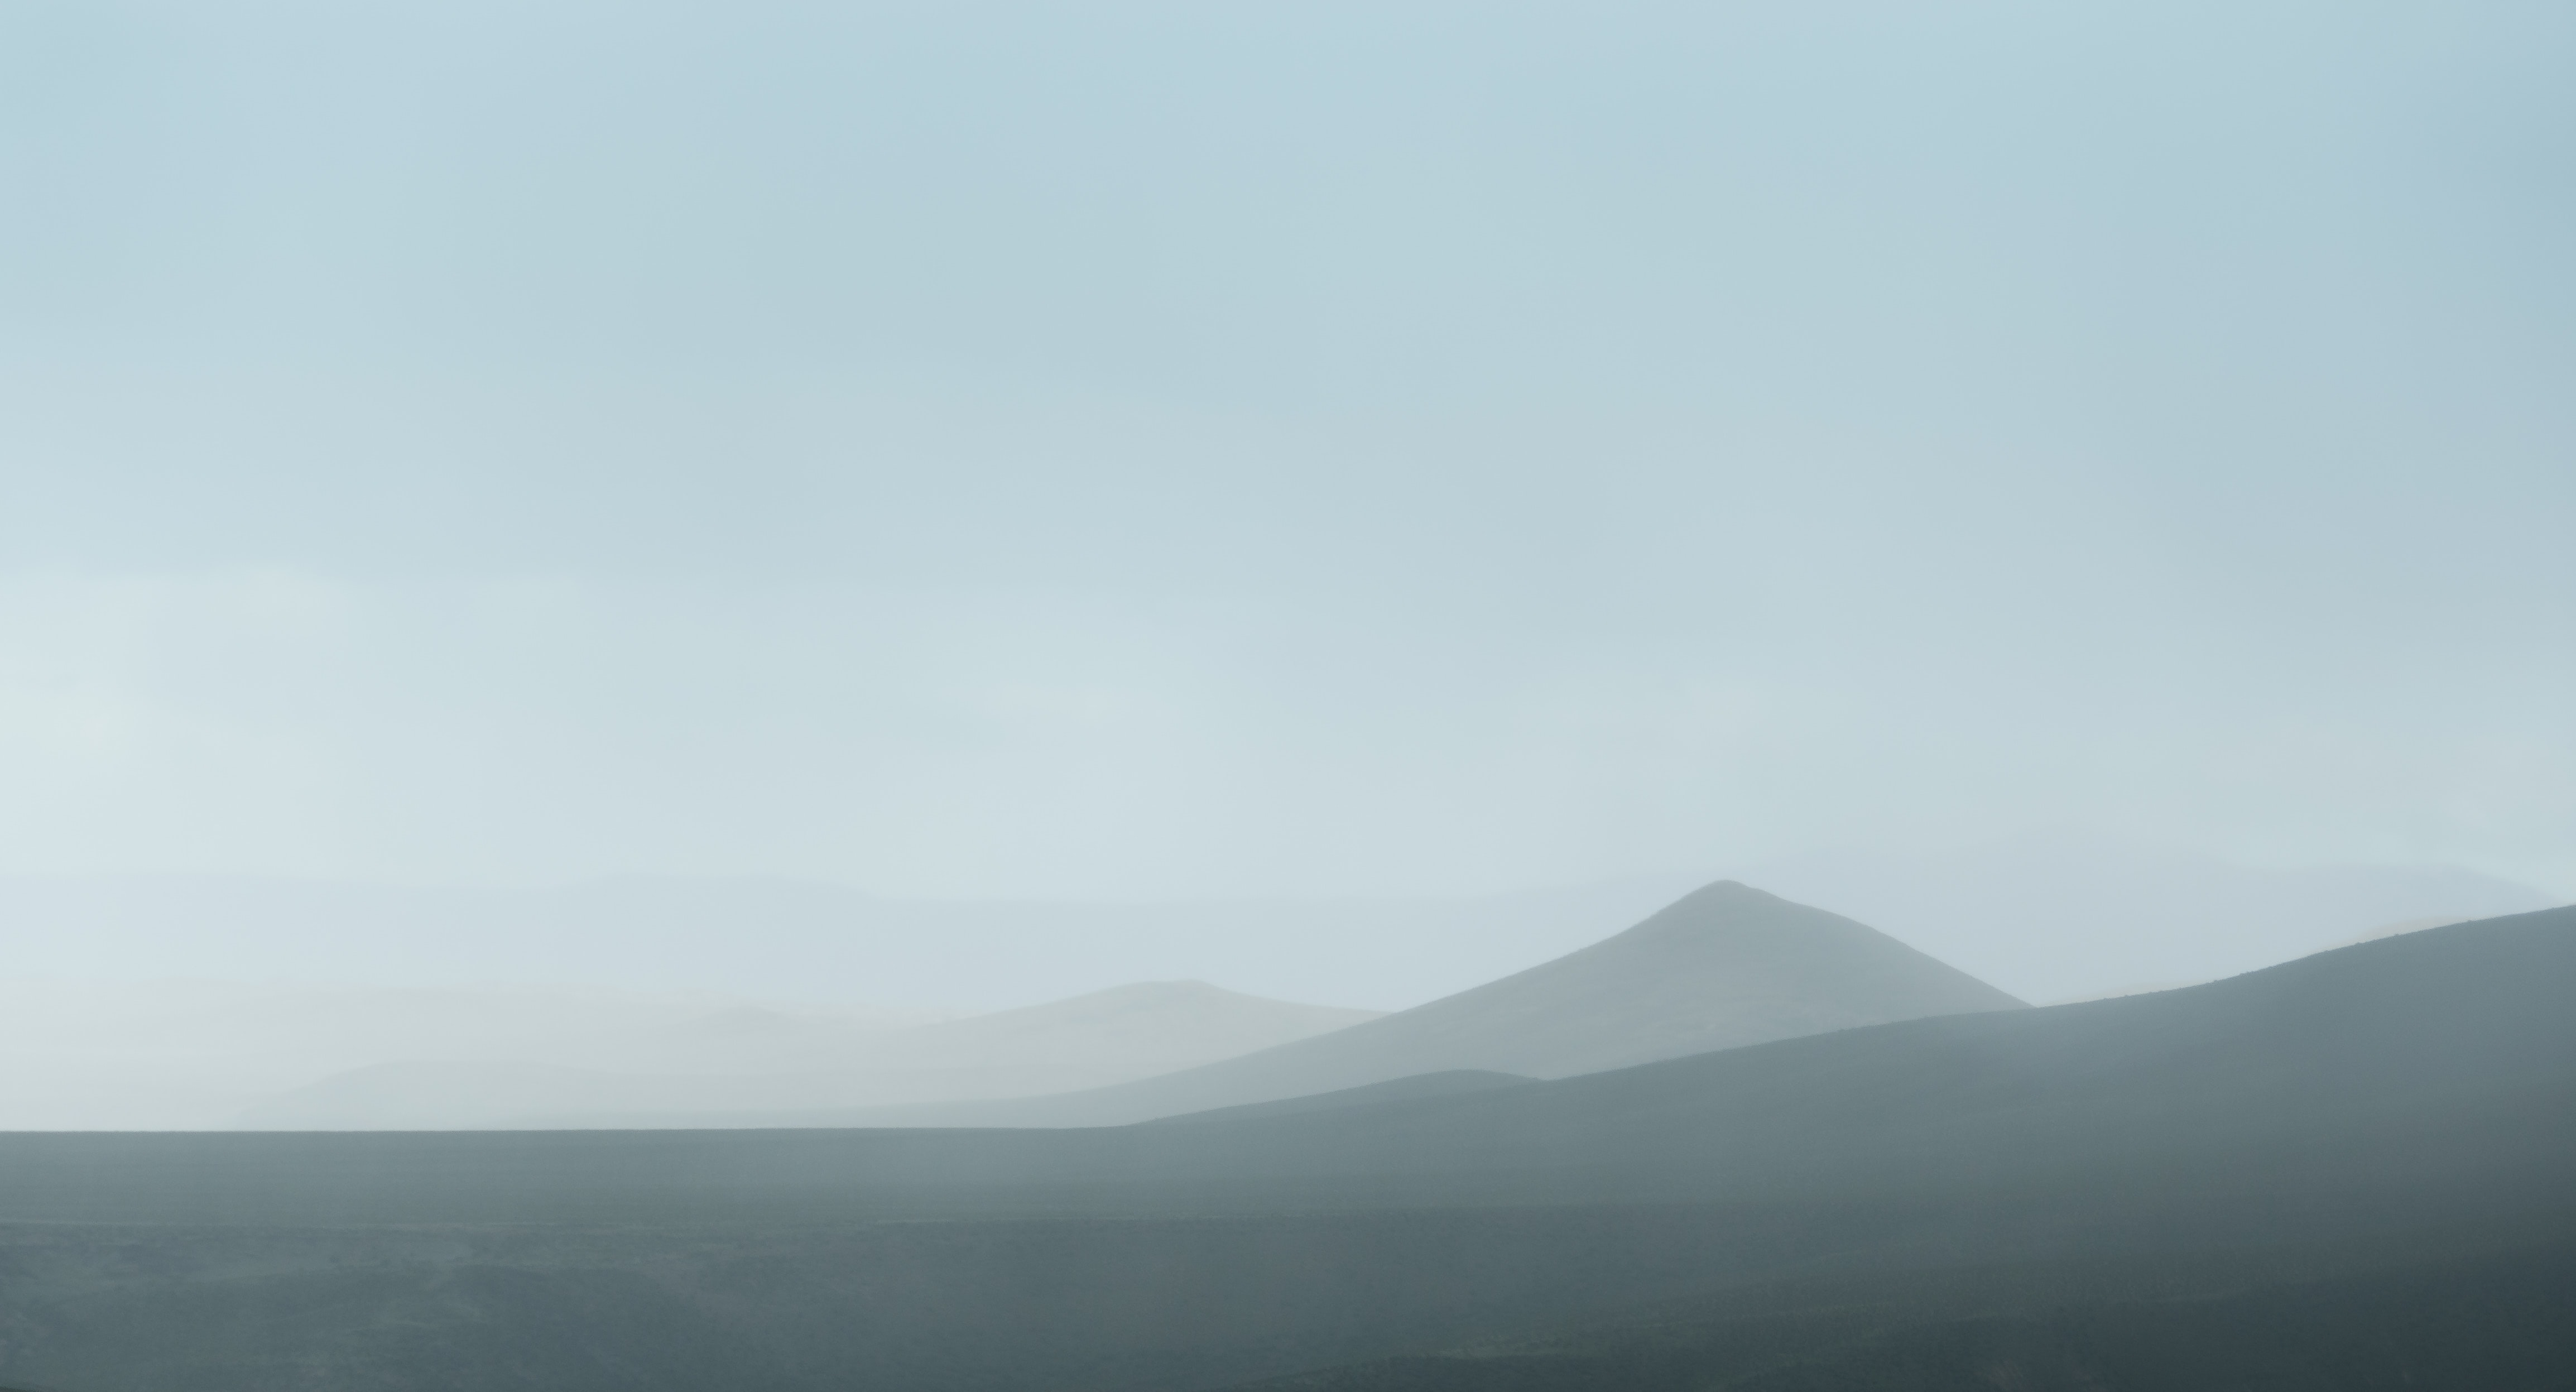 Fuzzy silhouettes of steep hills in a mist